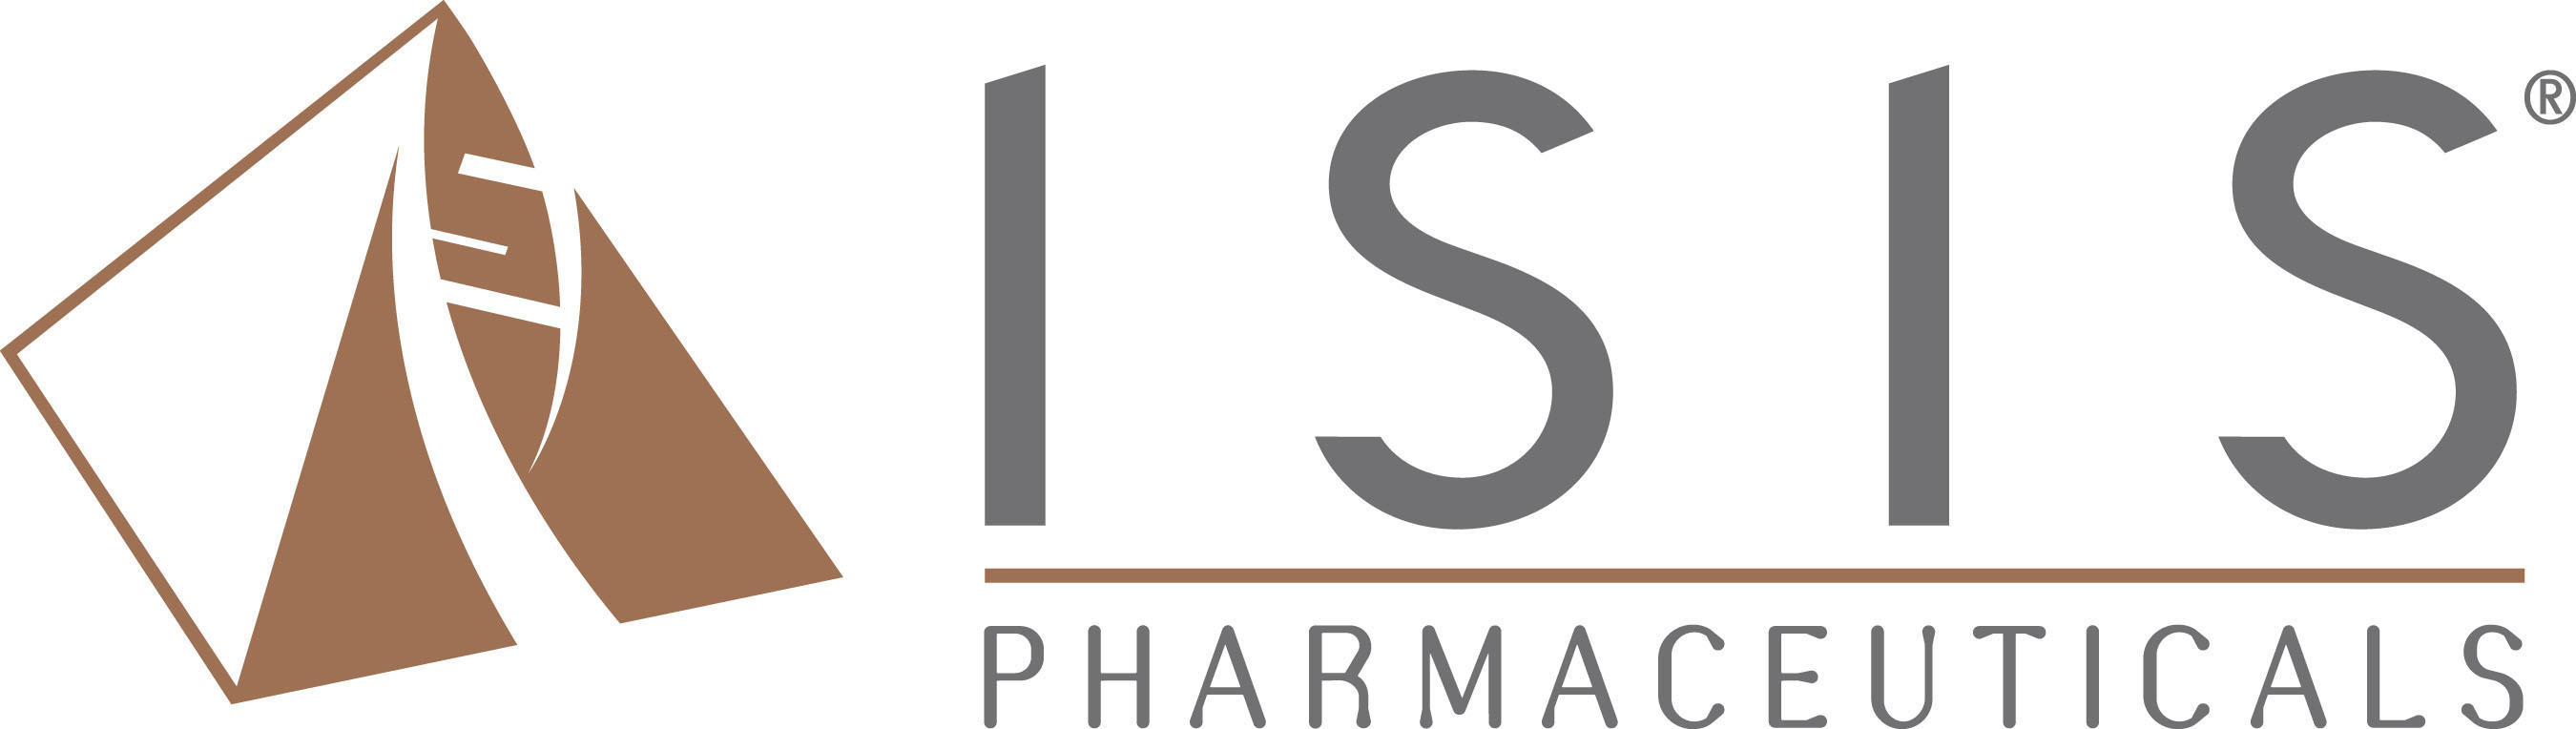 Isis Pharmaceuticals Inc. « Logos & Brands Directory